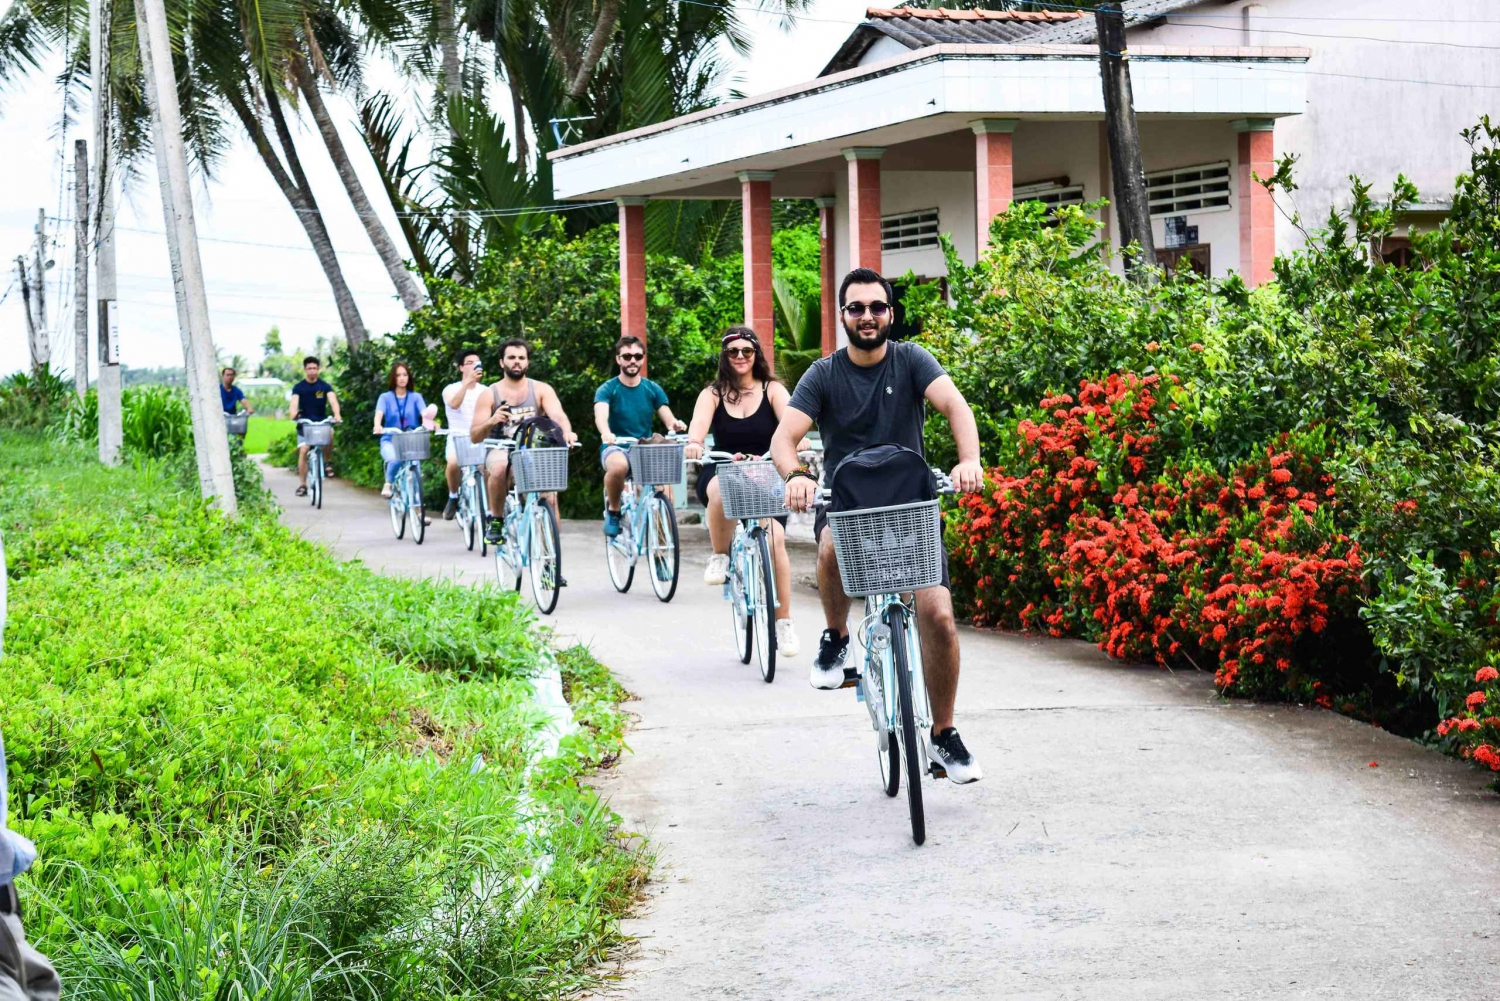 Non-Touristy Mekong Delta Tour for Instagrammers w/ Biking